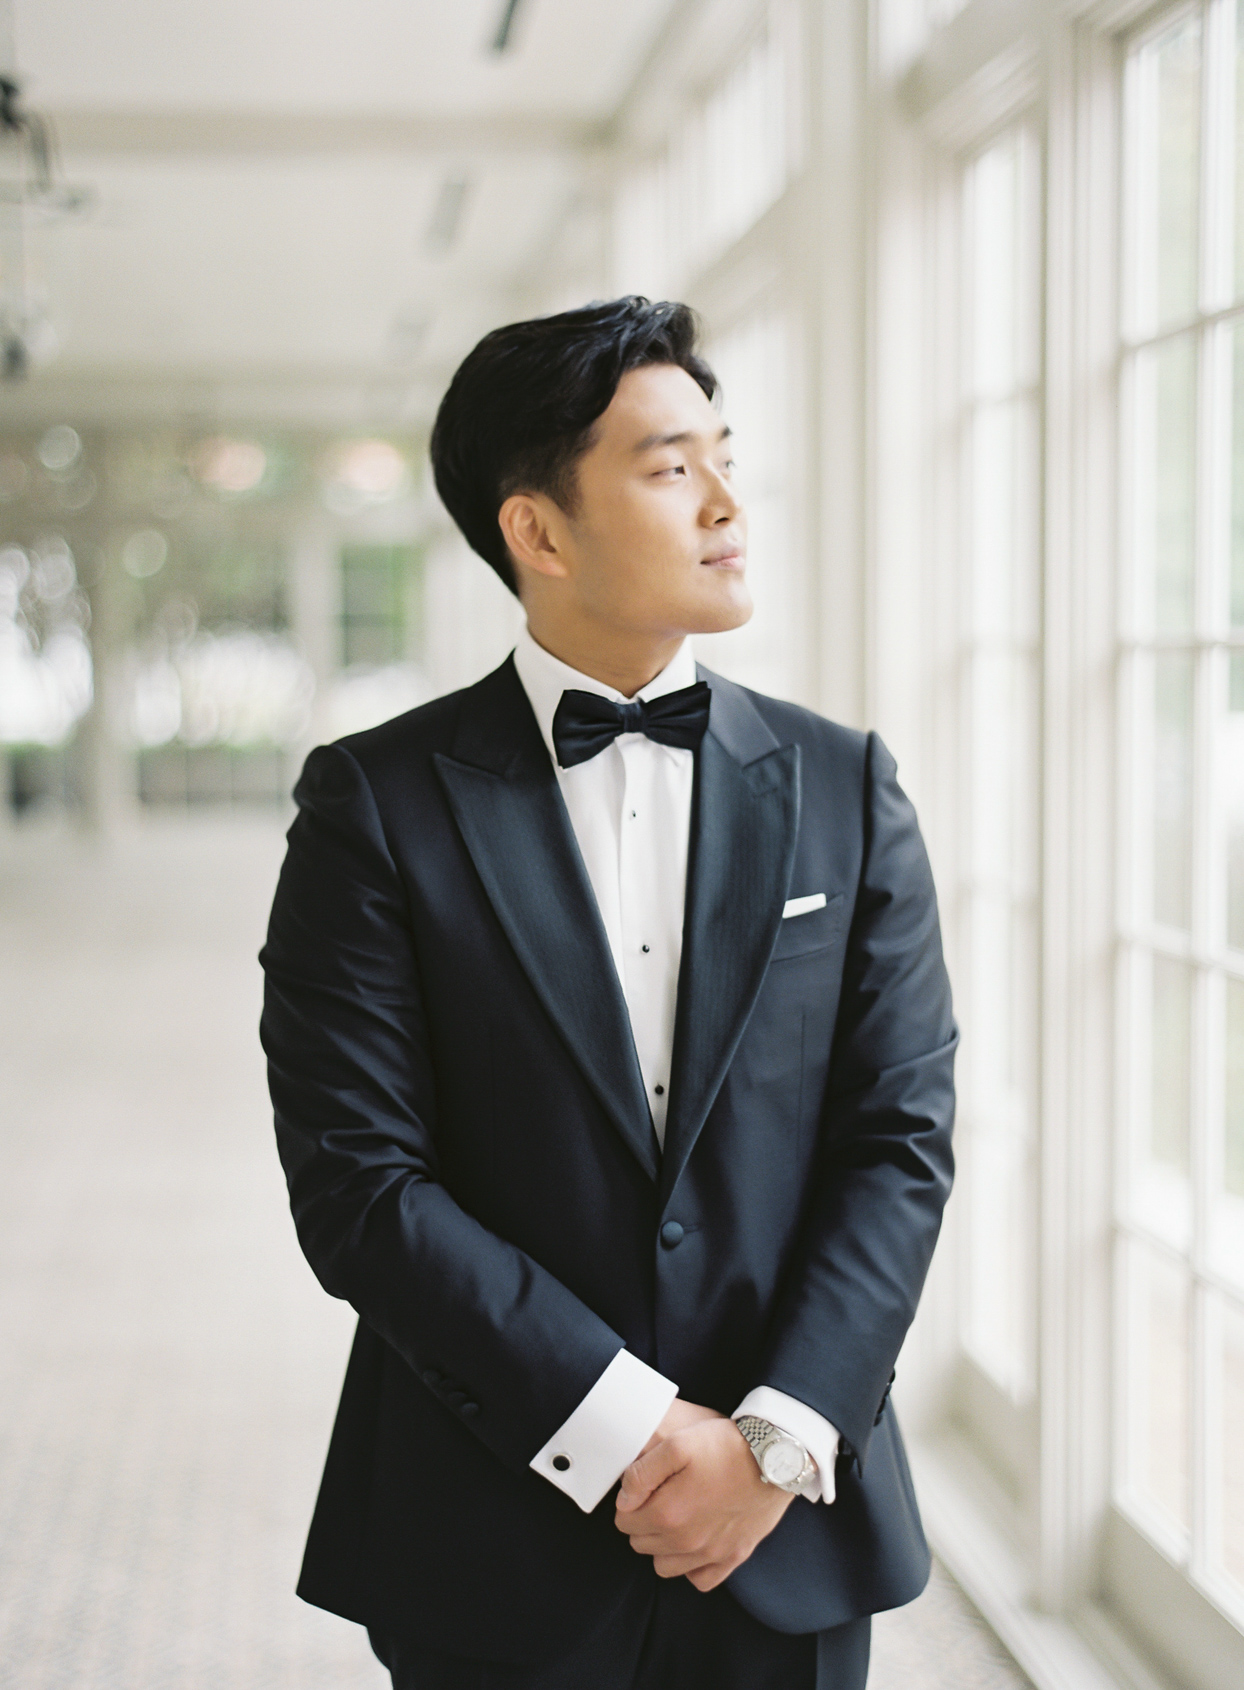 groom in black tuxedo with bow tie standing by windows